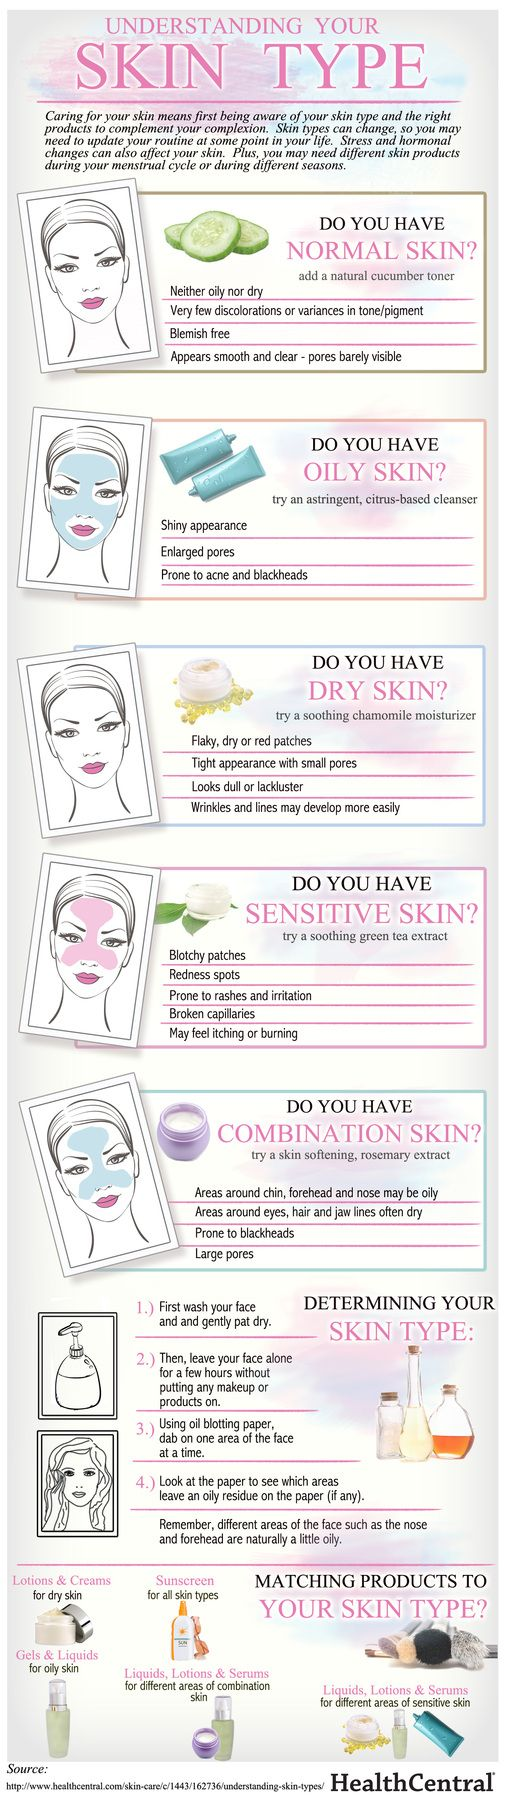 All about understanding your skin type. This infographic all about skin will help you decipher the kind of skin you have, and what to do to treat and take care of your skin.